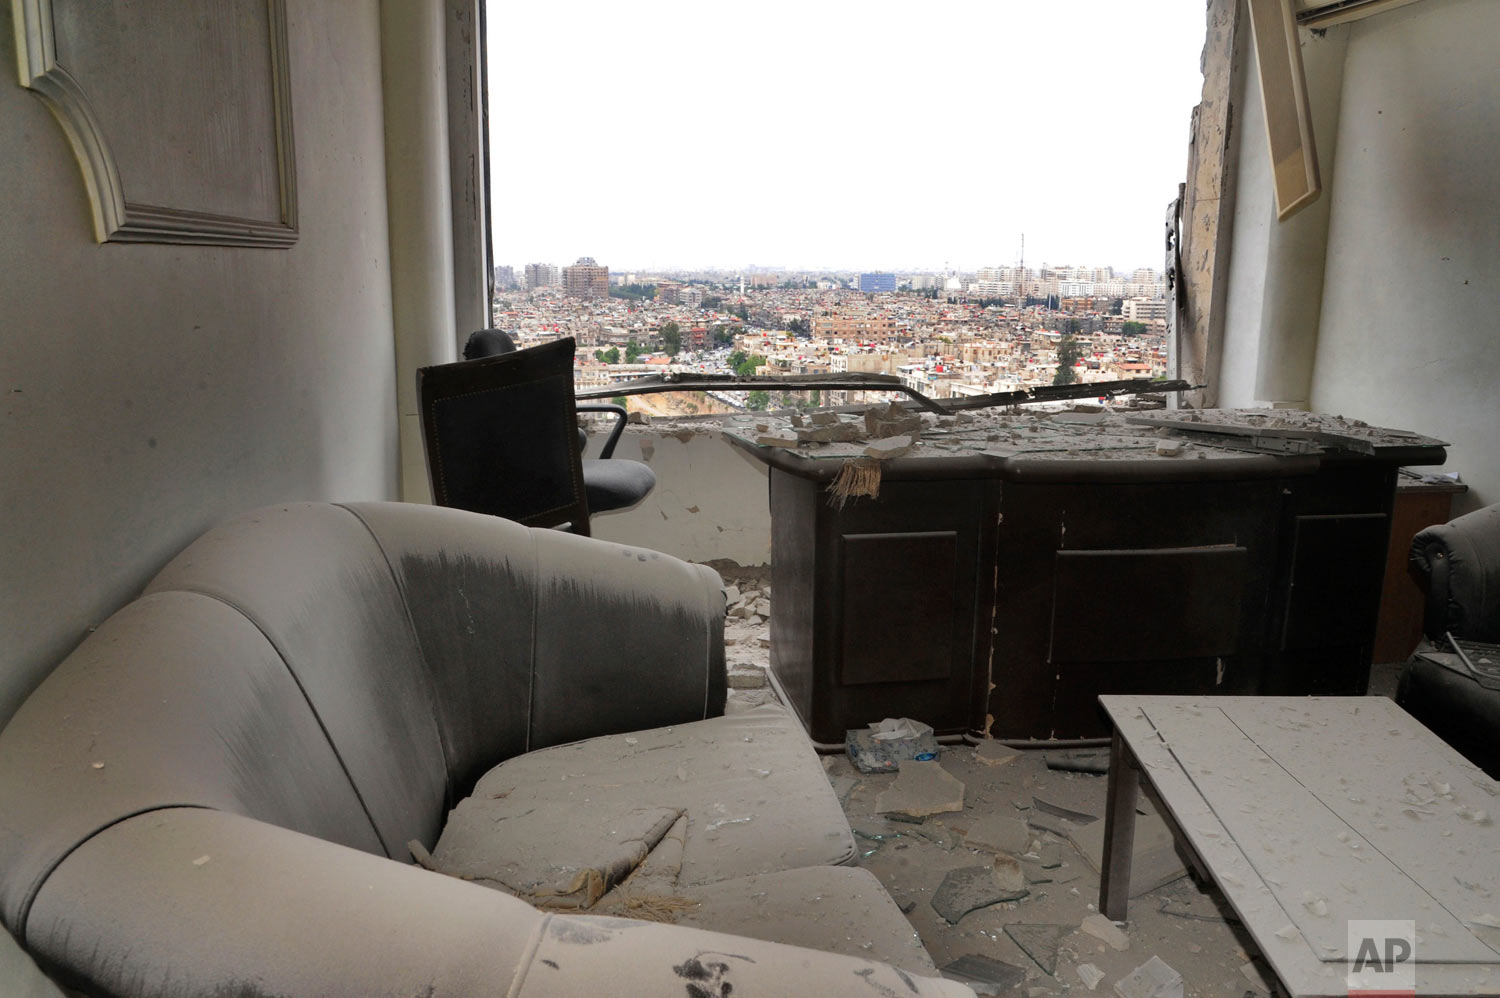 This photo released by the Syrian official news agency SANA shows damage inside a office that was hit by shelling, apparently by Islamic State fighters, in Damascus, Syria, Wednesday, May 9, 2018. Militants fired three mortar shells on the center of Damascus Wednesday killing several and wounding 14, Syria's state news agency said. (SANA via AP)